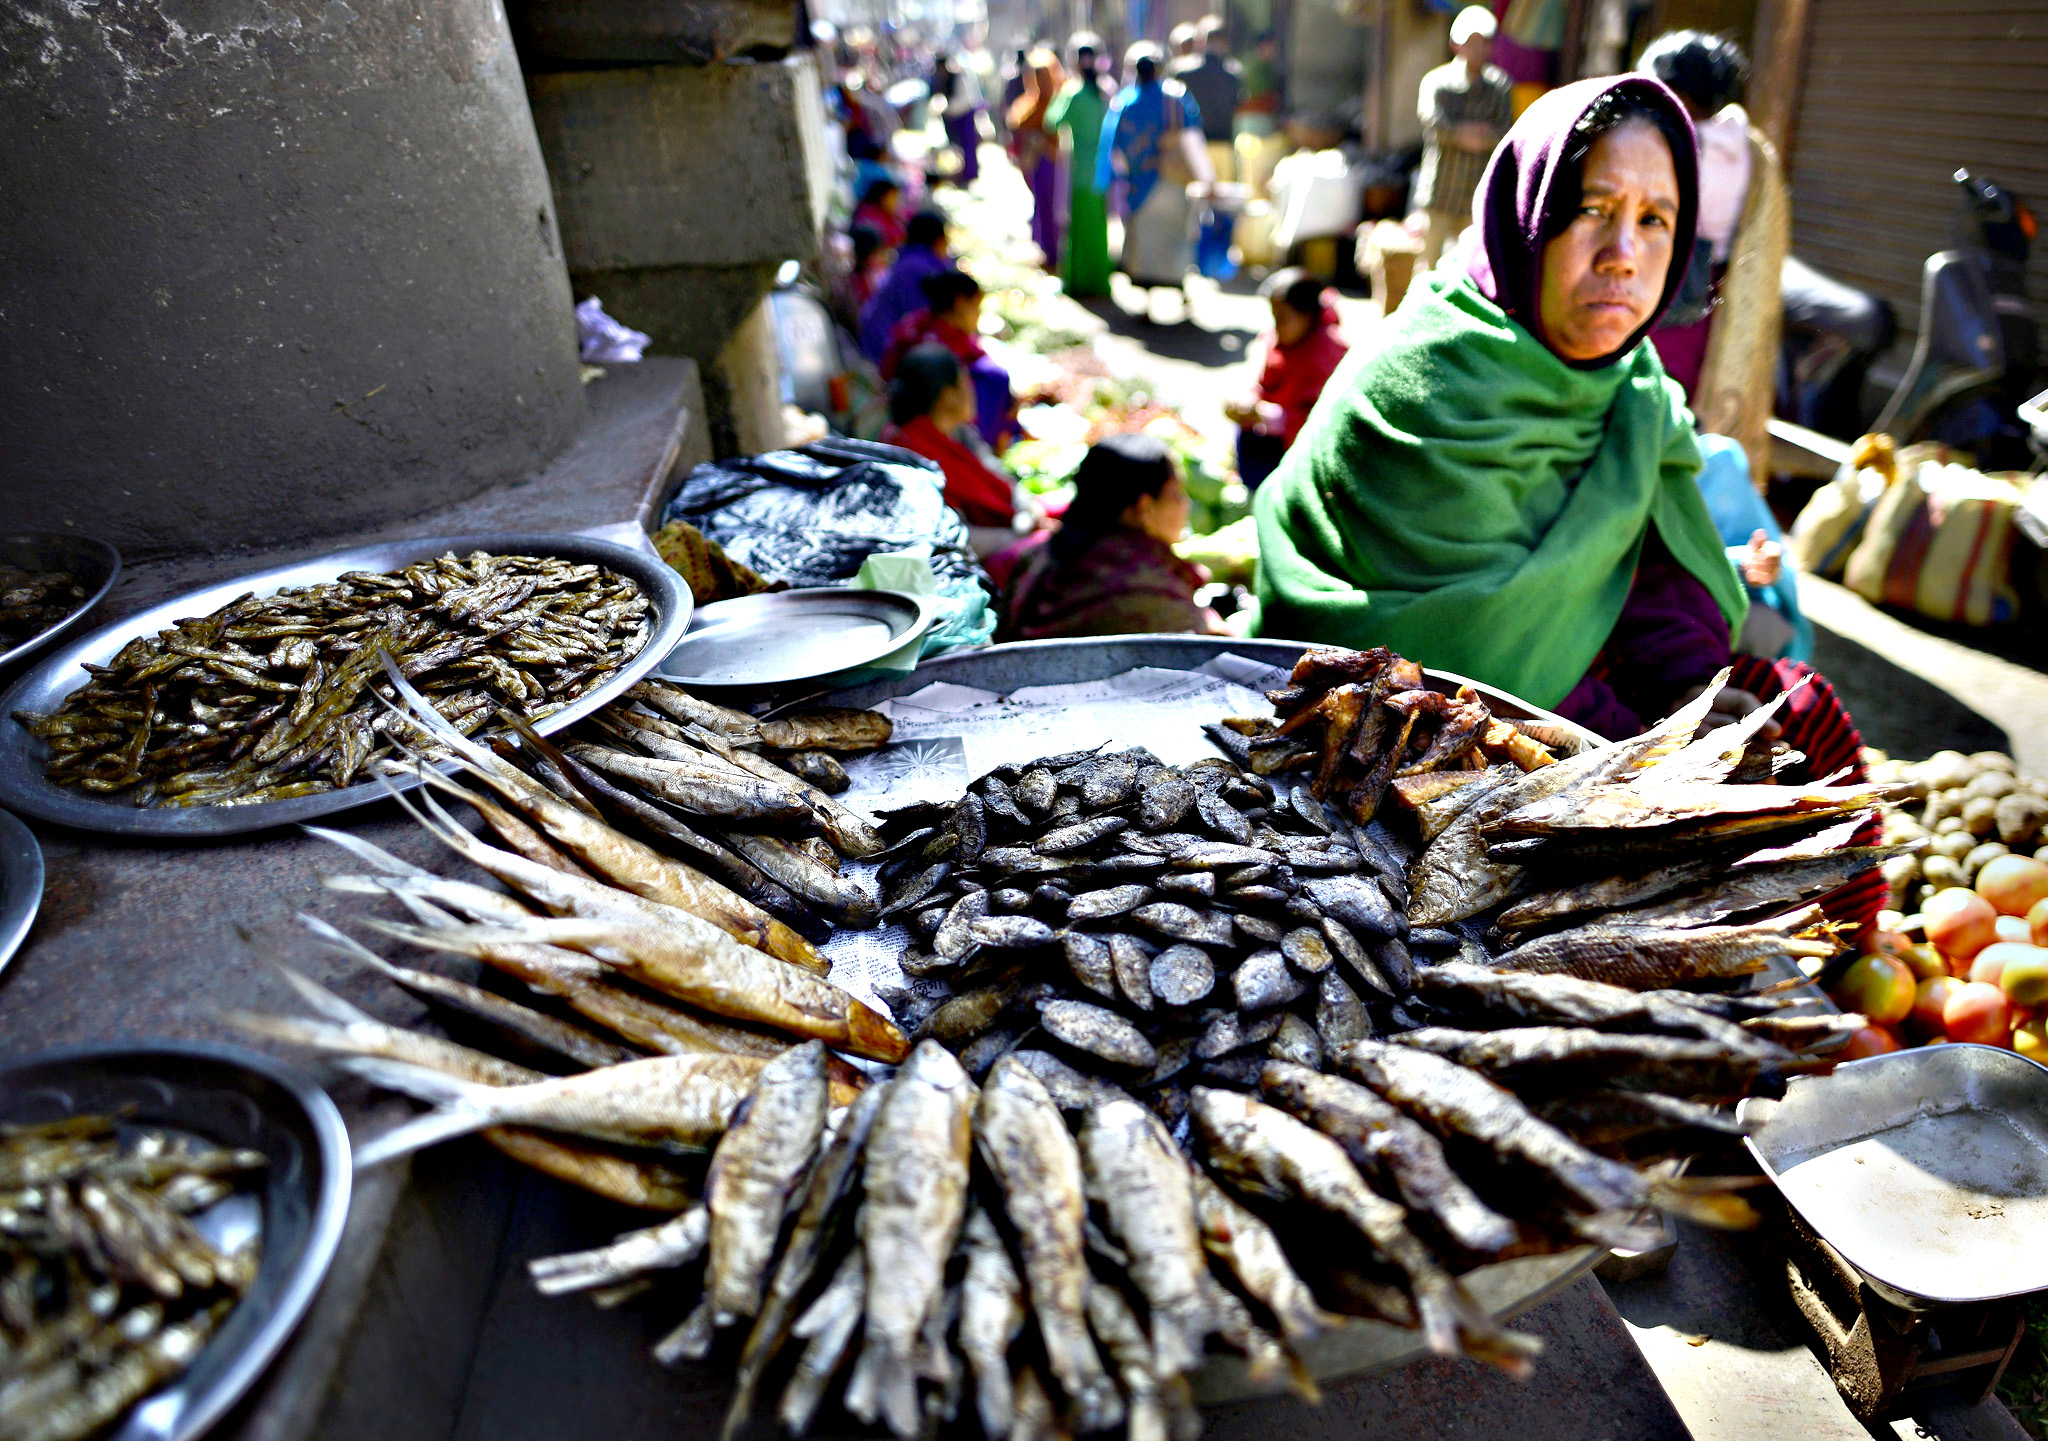 A Manipuri woman sells smoked and dry fish in Ima market - the world's largest all women market - in Imphal city, Manipur state, 06 January 2016. The 150-year-old Ima Keithel or 'Mothers's market' complex, which is run exclusively by women and was damaged in the 04 January 2016 earthquake, is returning back to normal. Nine deaths have been reported from in and around Imphal due to falling debris. Imphal has a population of some 270,000 and people were jolted from their sleep and ran out of their homes in panic when the earth shook 04 January, reports say.